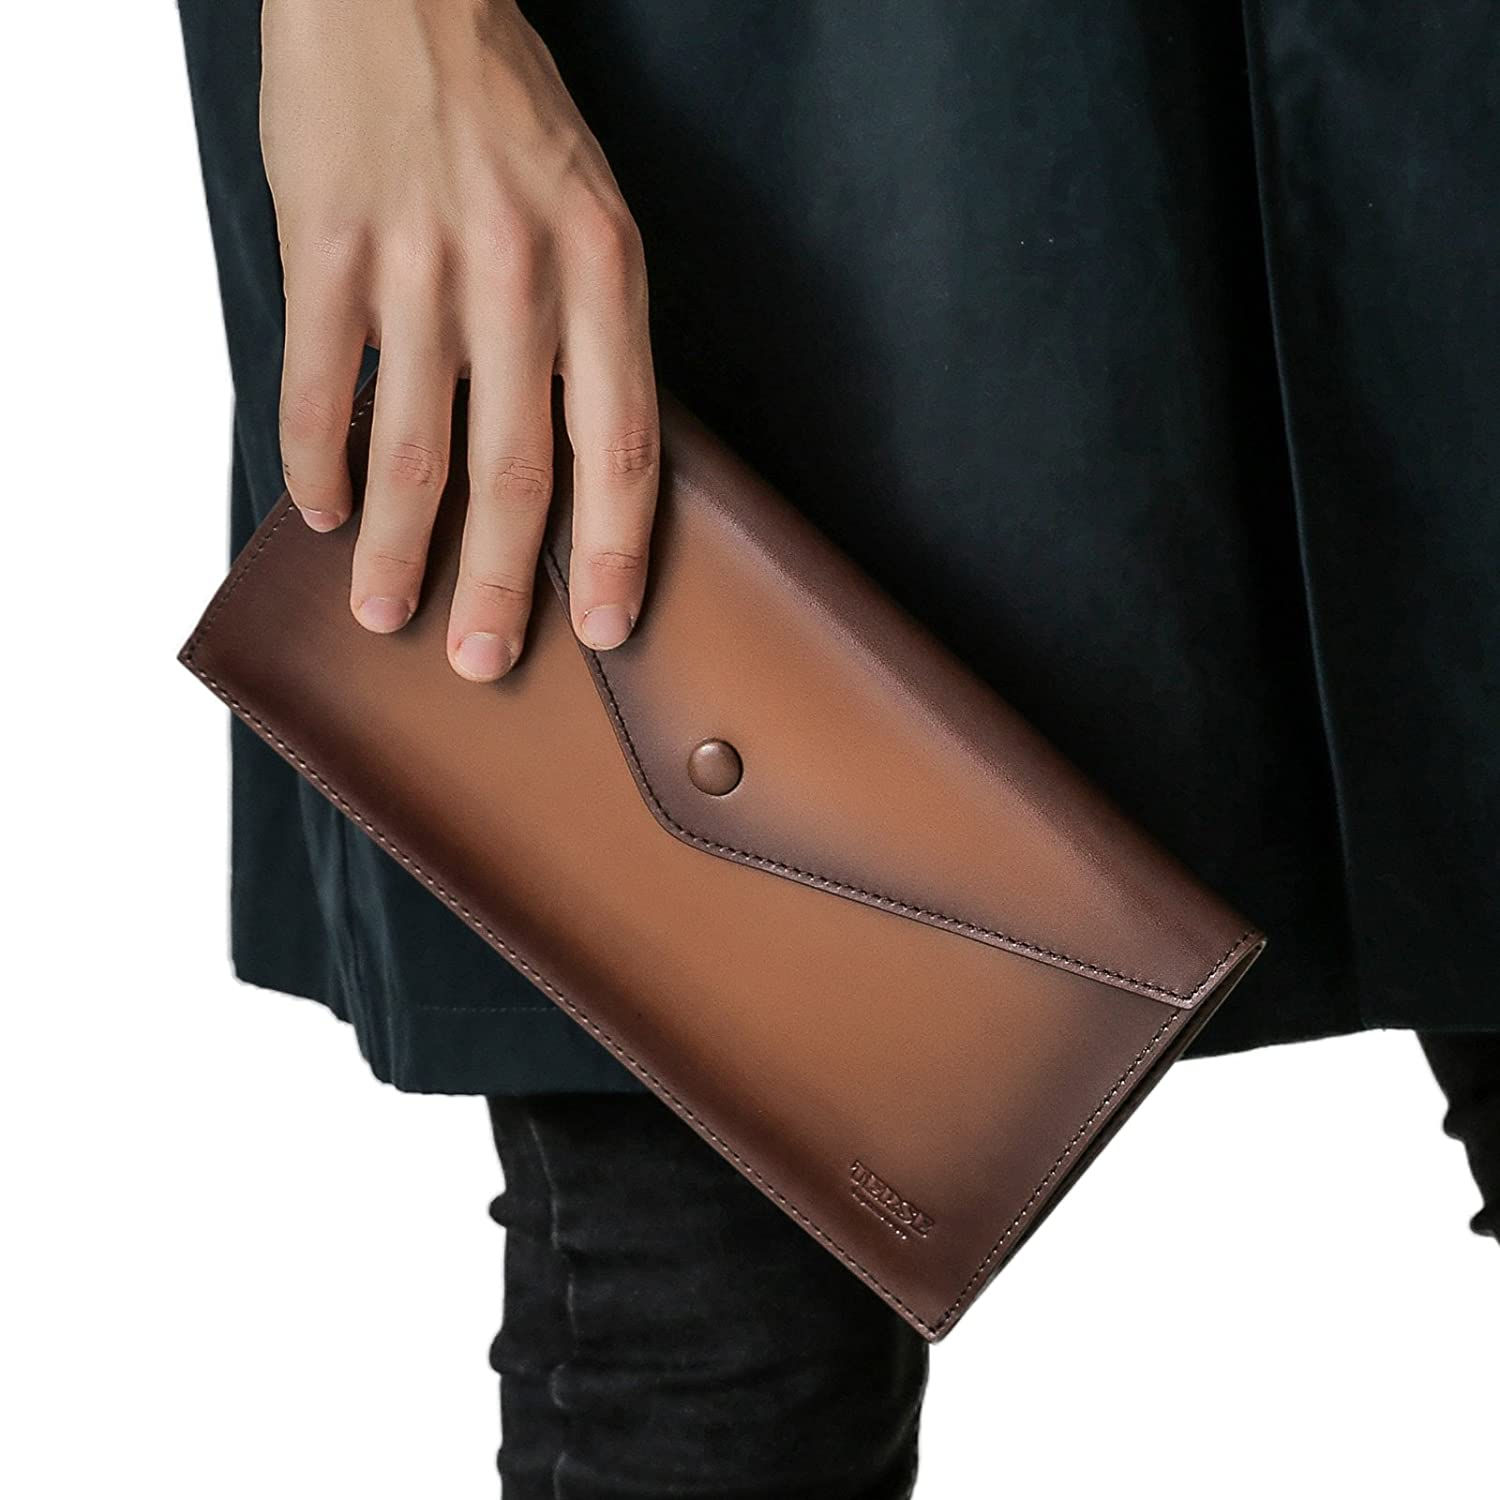 Italian Calfskin TERSE Mens Leather Wallet Clutch Purse Long Wallet Phone Case With Card Cash Holder